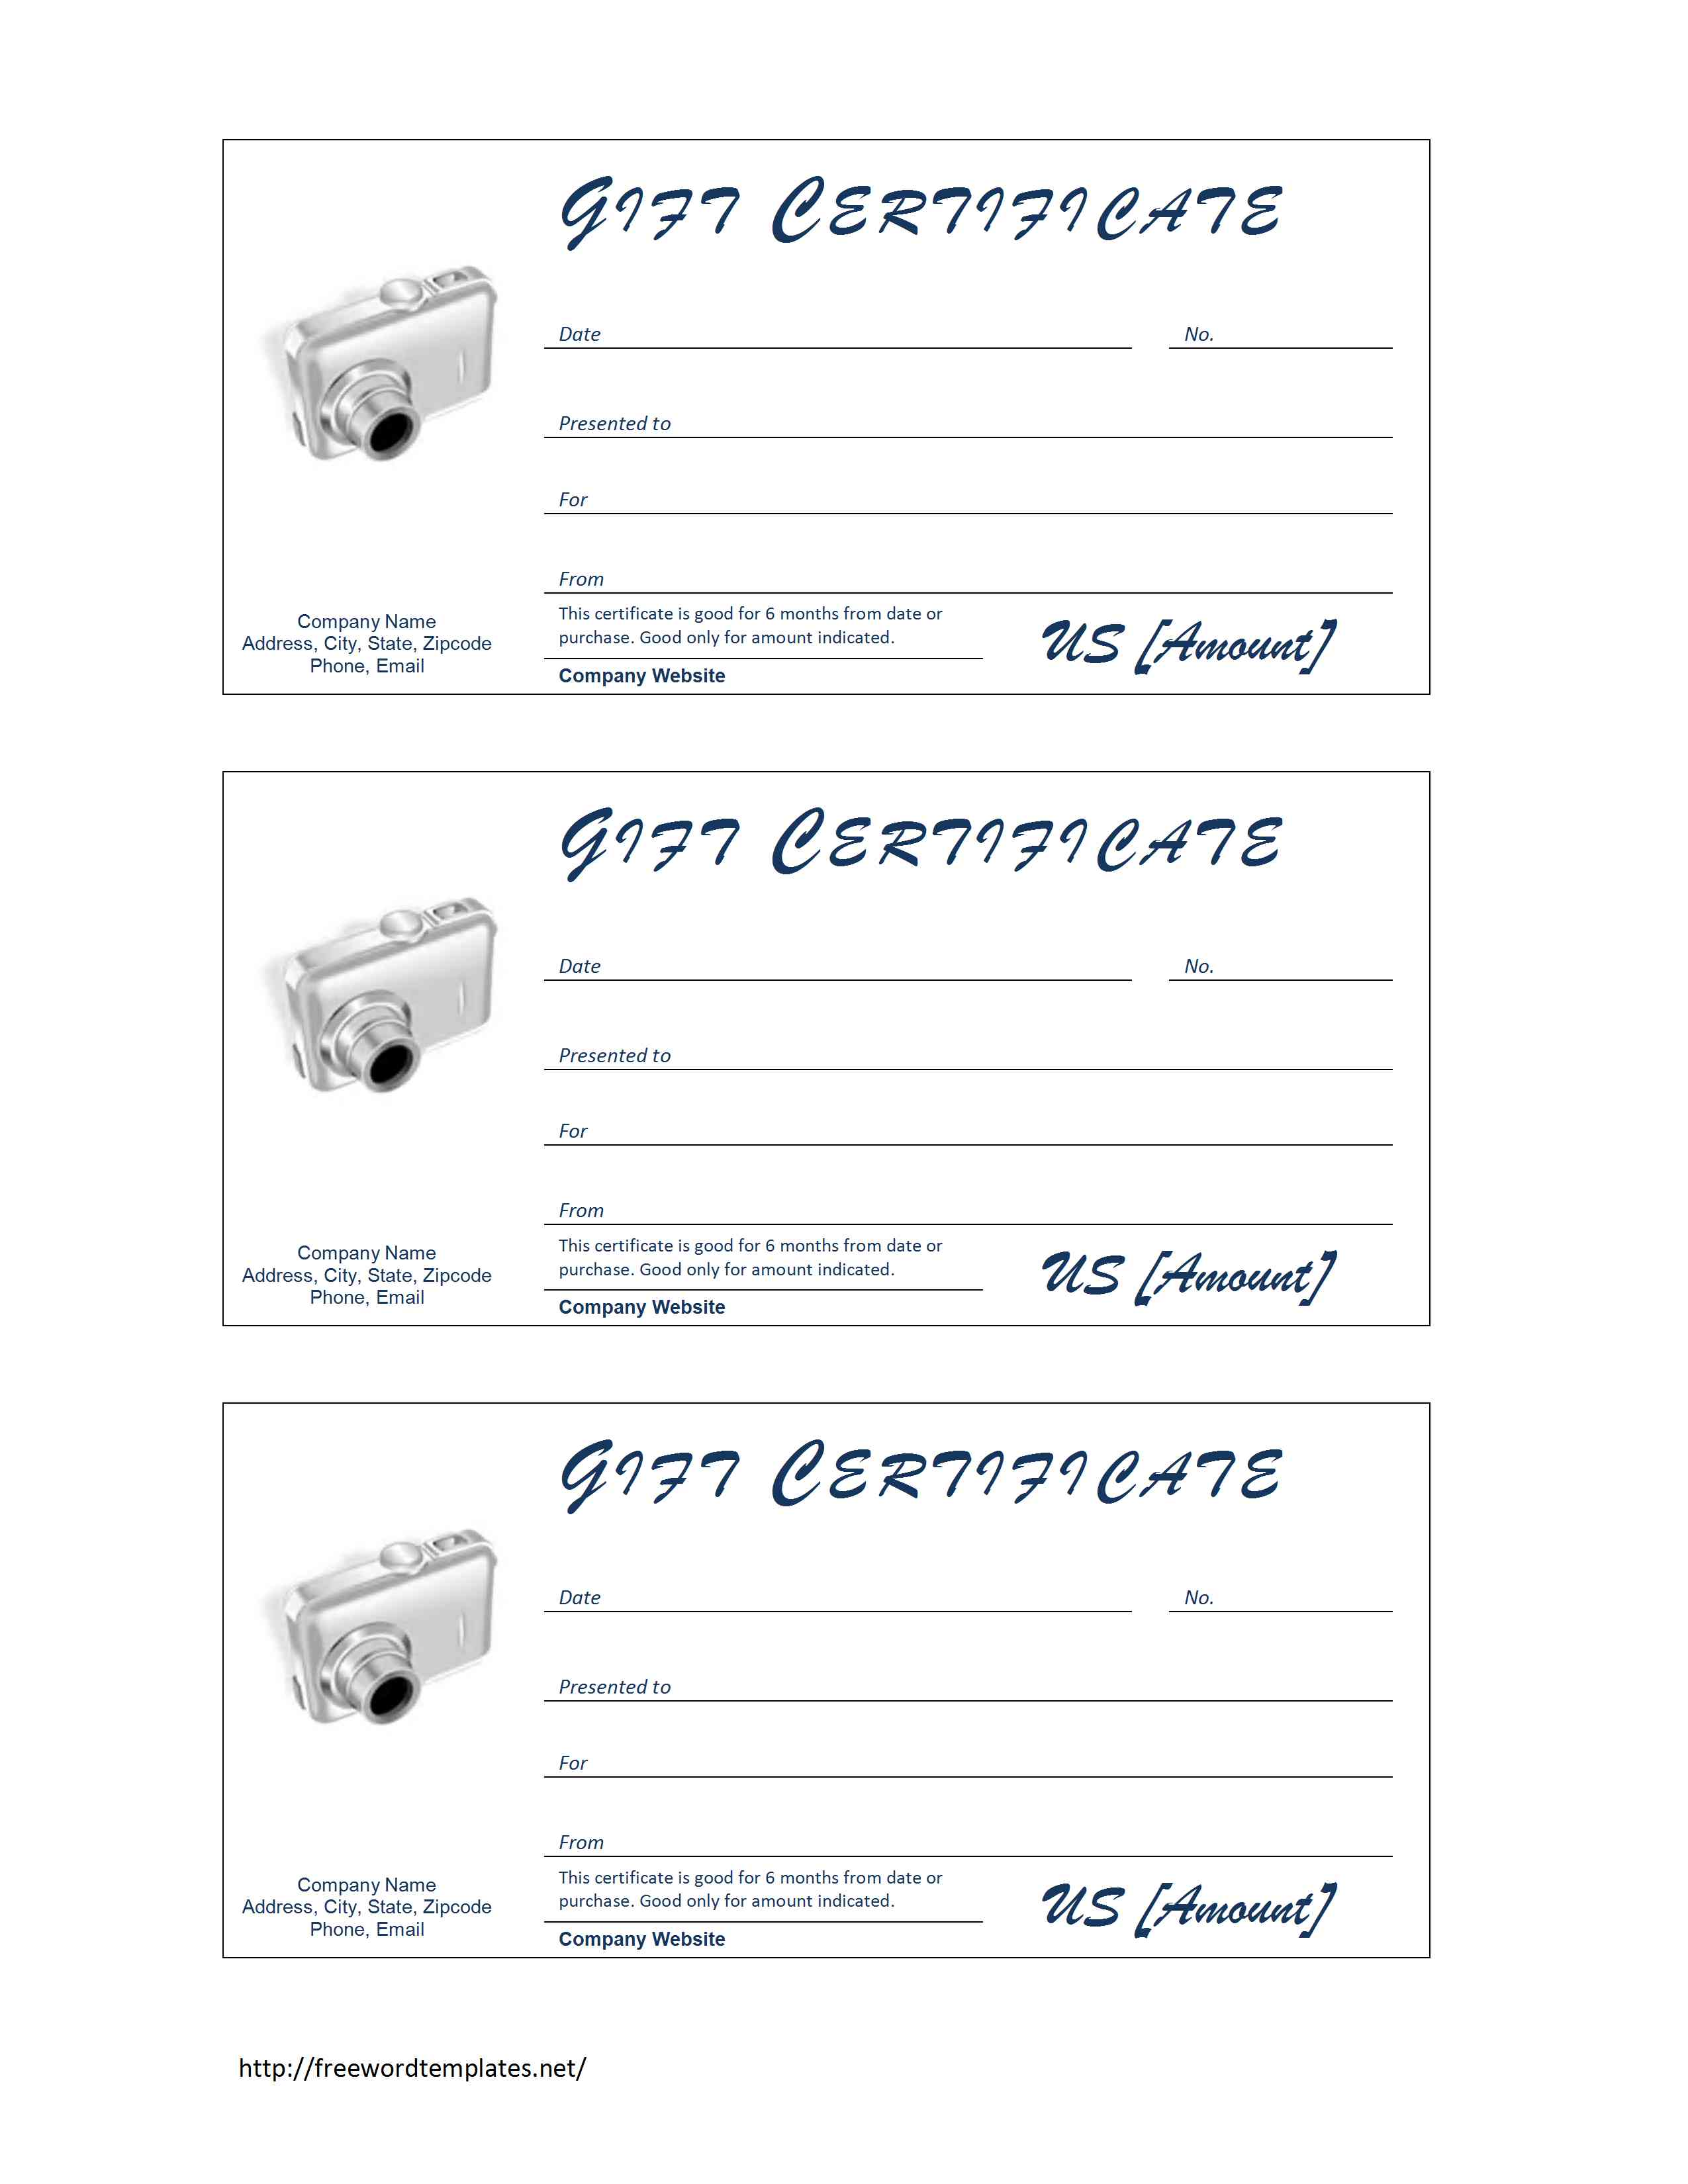 Sales Receipt Template Pdf Word Small Gift Tag Template  Sample Customer Service Resume House Advance Payment Receipt Format Excel with Carbonless Invoice Books Excel Small Gift Tag Template  Free Printable Gift Tag Templates The Spruce Gift  Tag Template Large Receipt Meaning Pdf